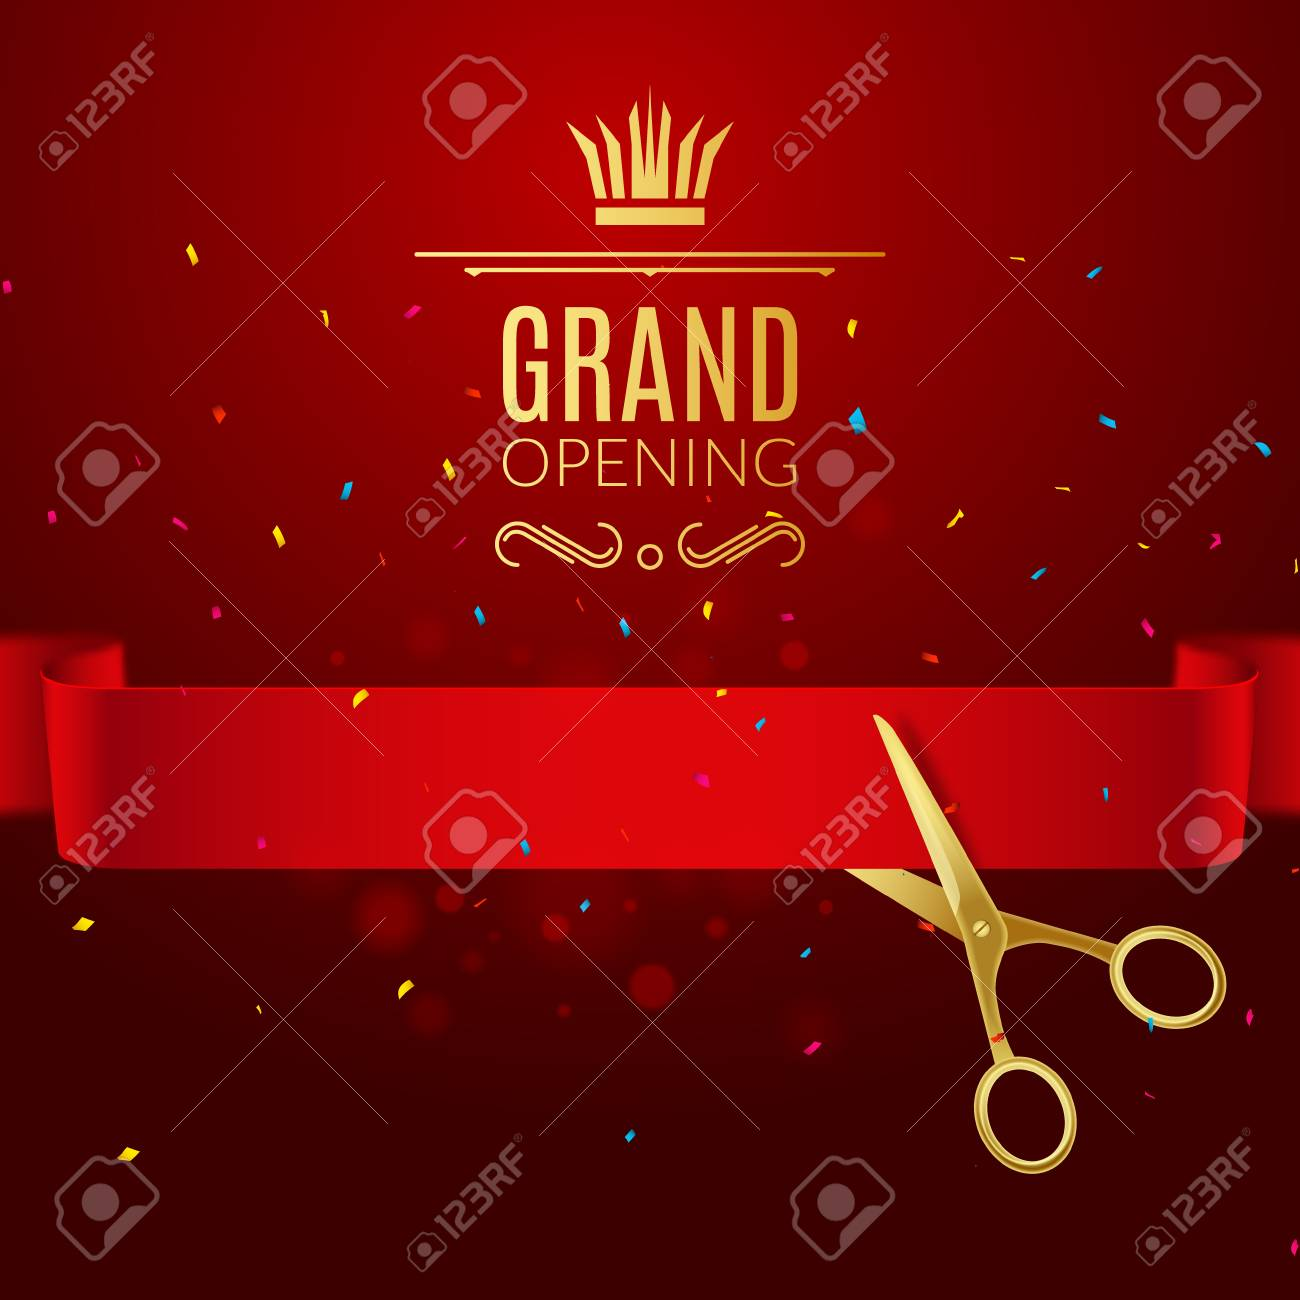 grand opening design template with ribbon and scissors grand